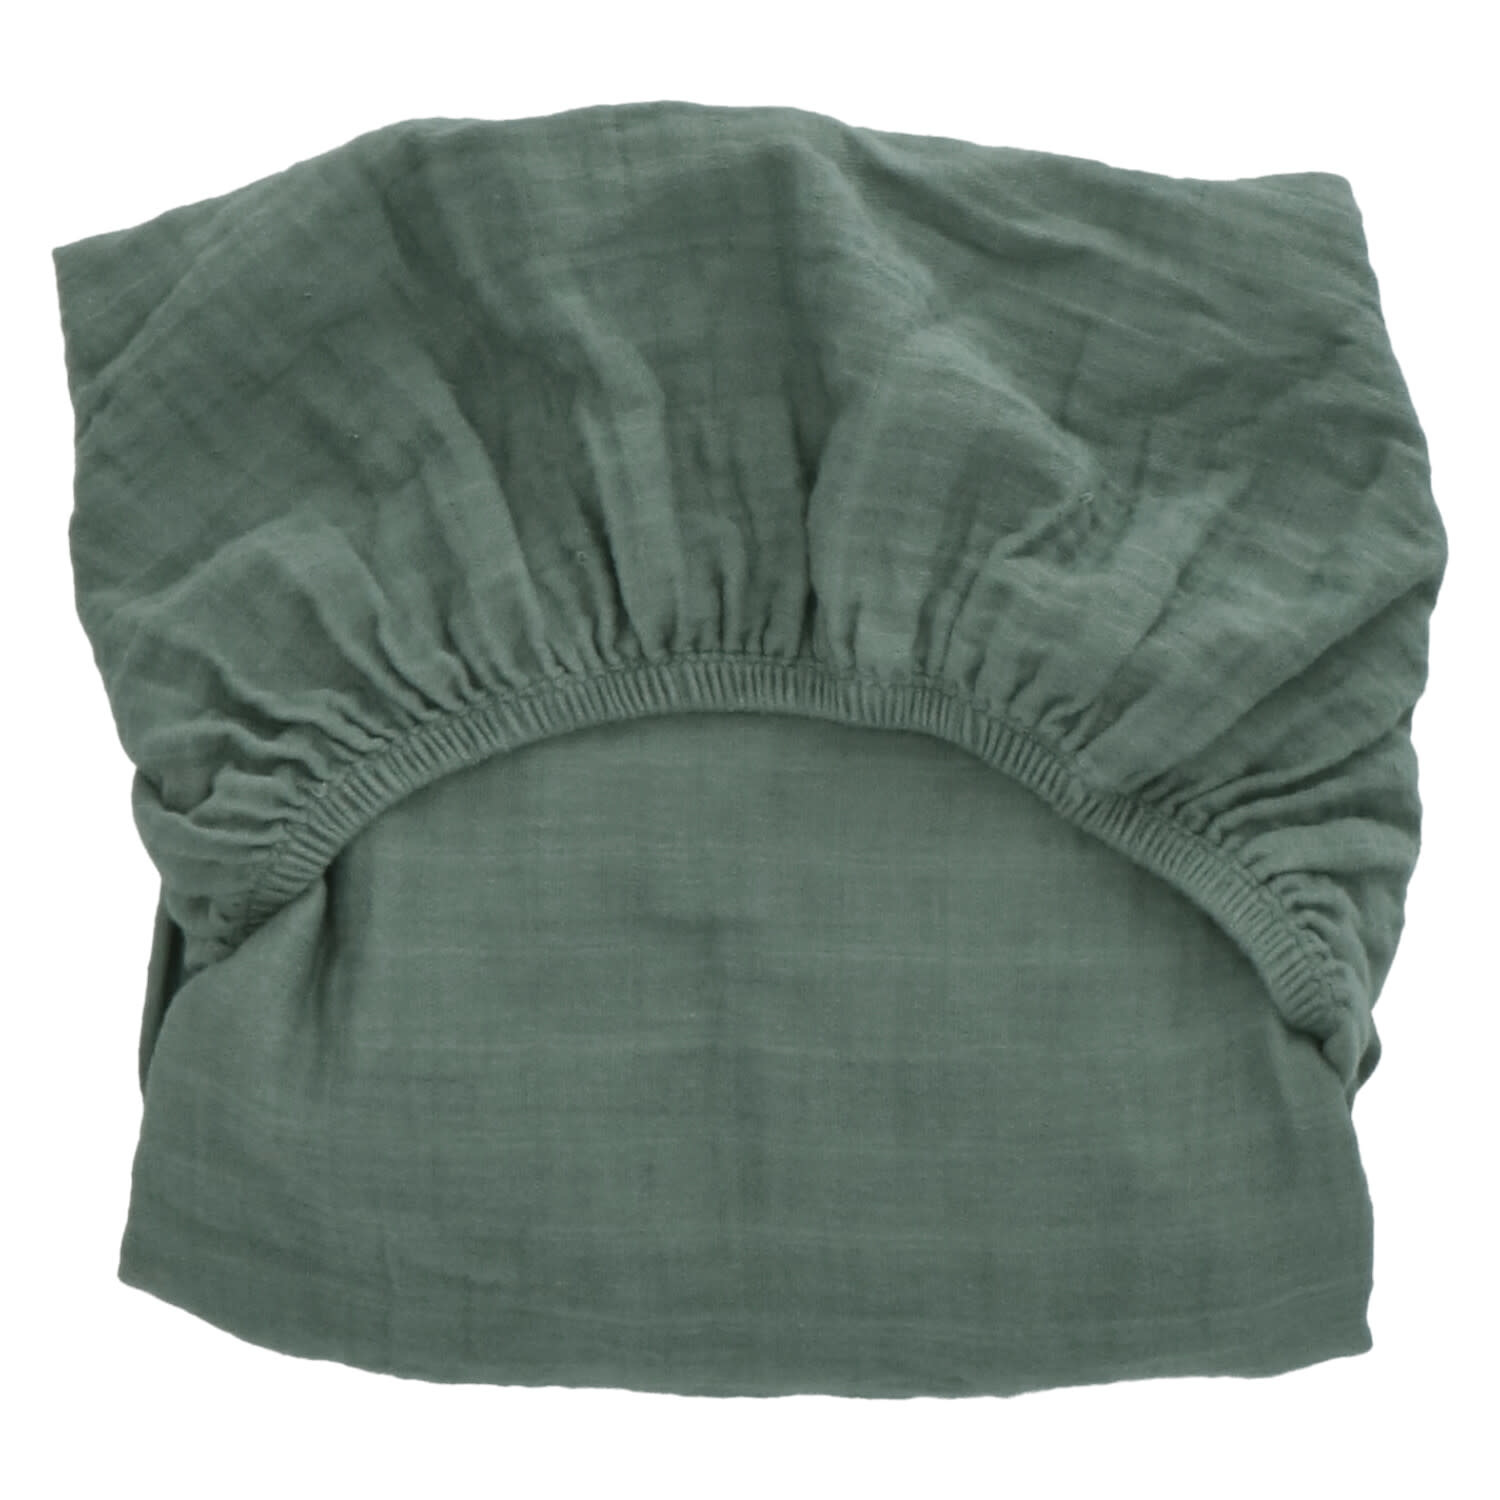 Franklin fitted sheet bay-1